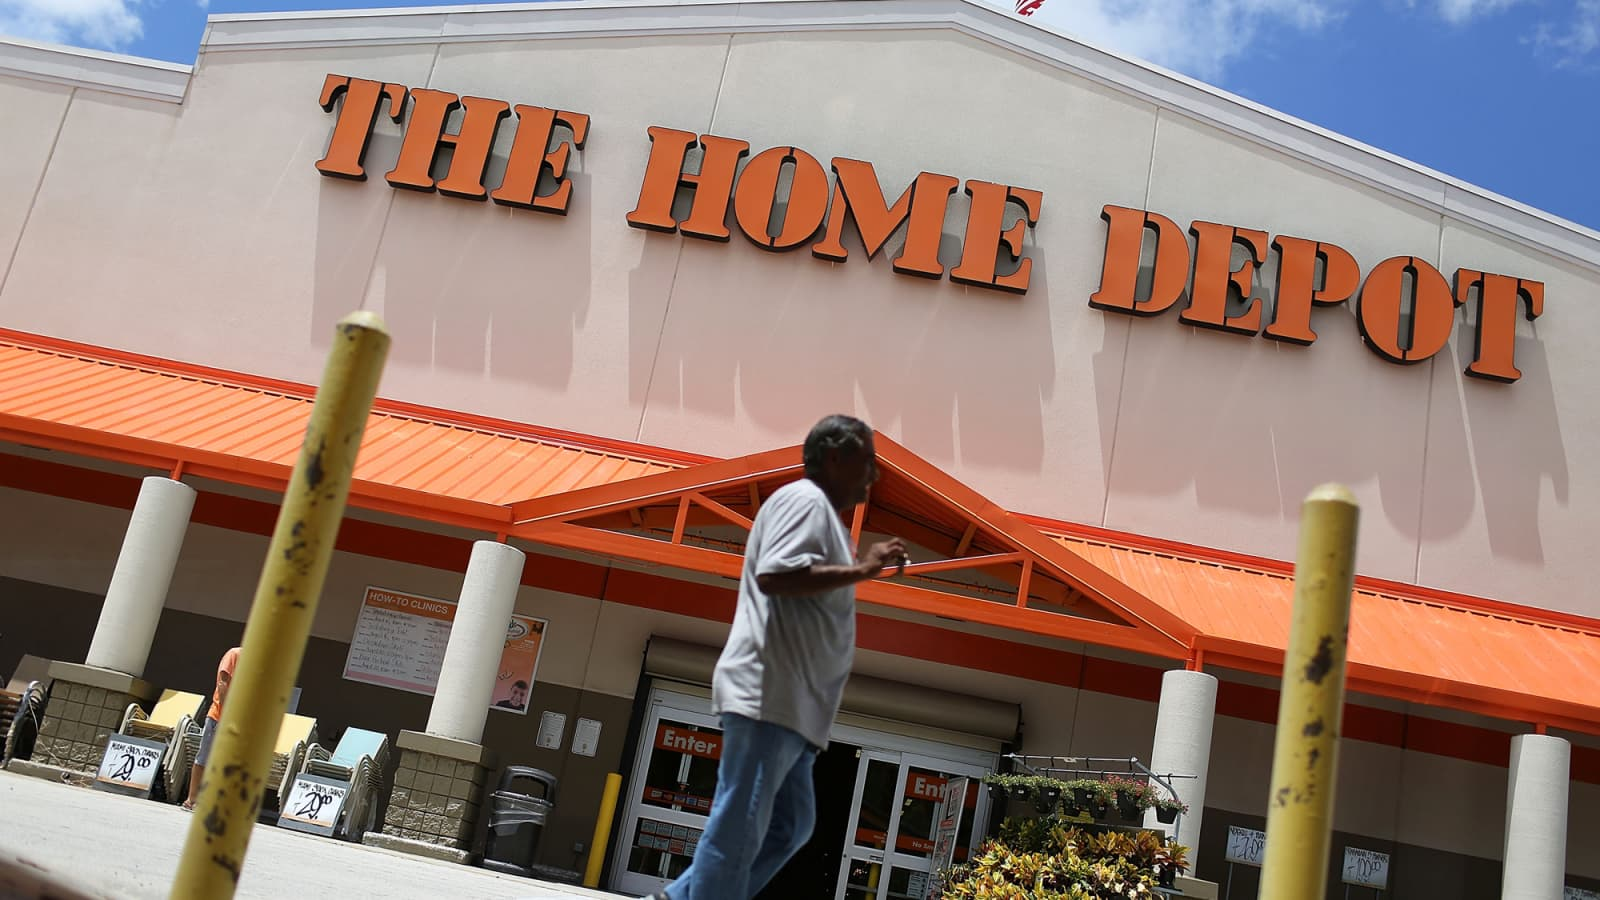 Home Depot Hd Earnings Q4 2019 Top Estimates Shares Rise